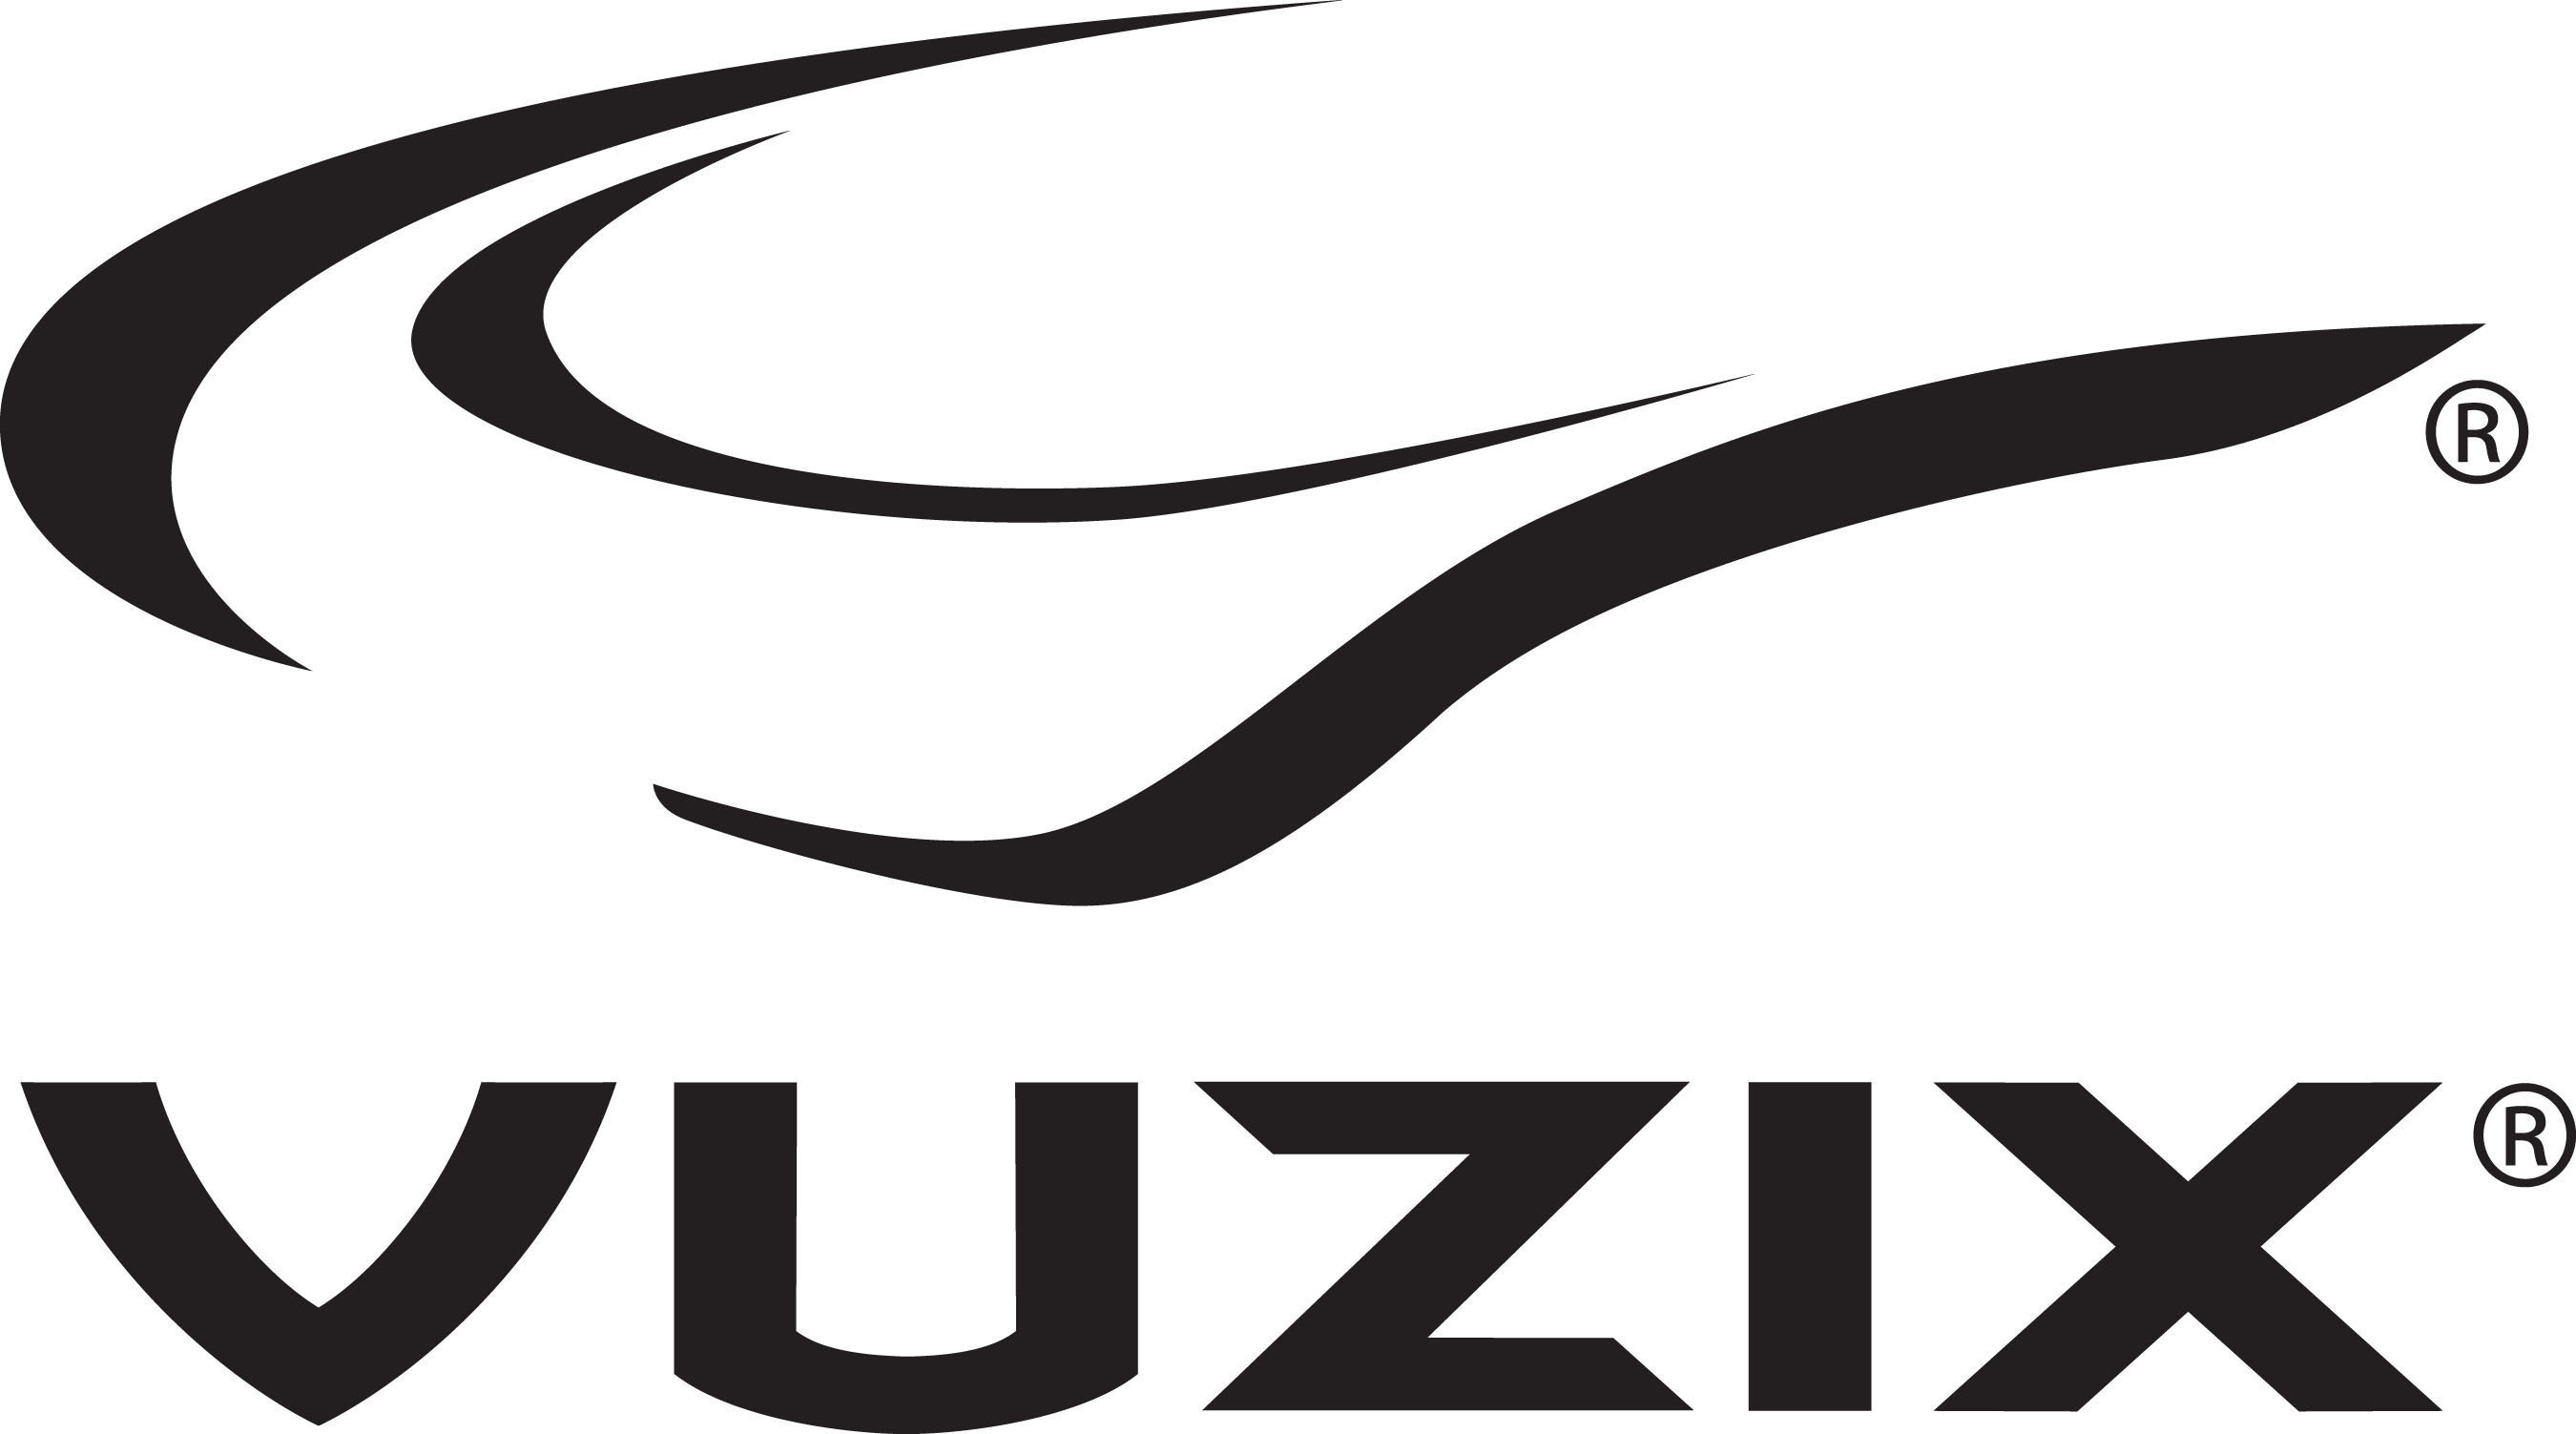 Vuzix Reports Full Year 2014 Financial Results